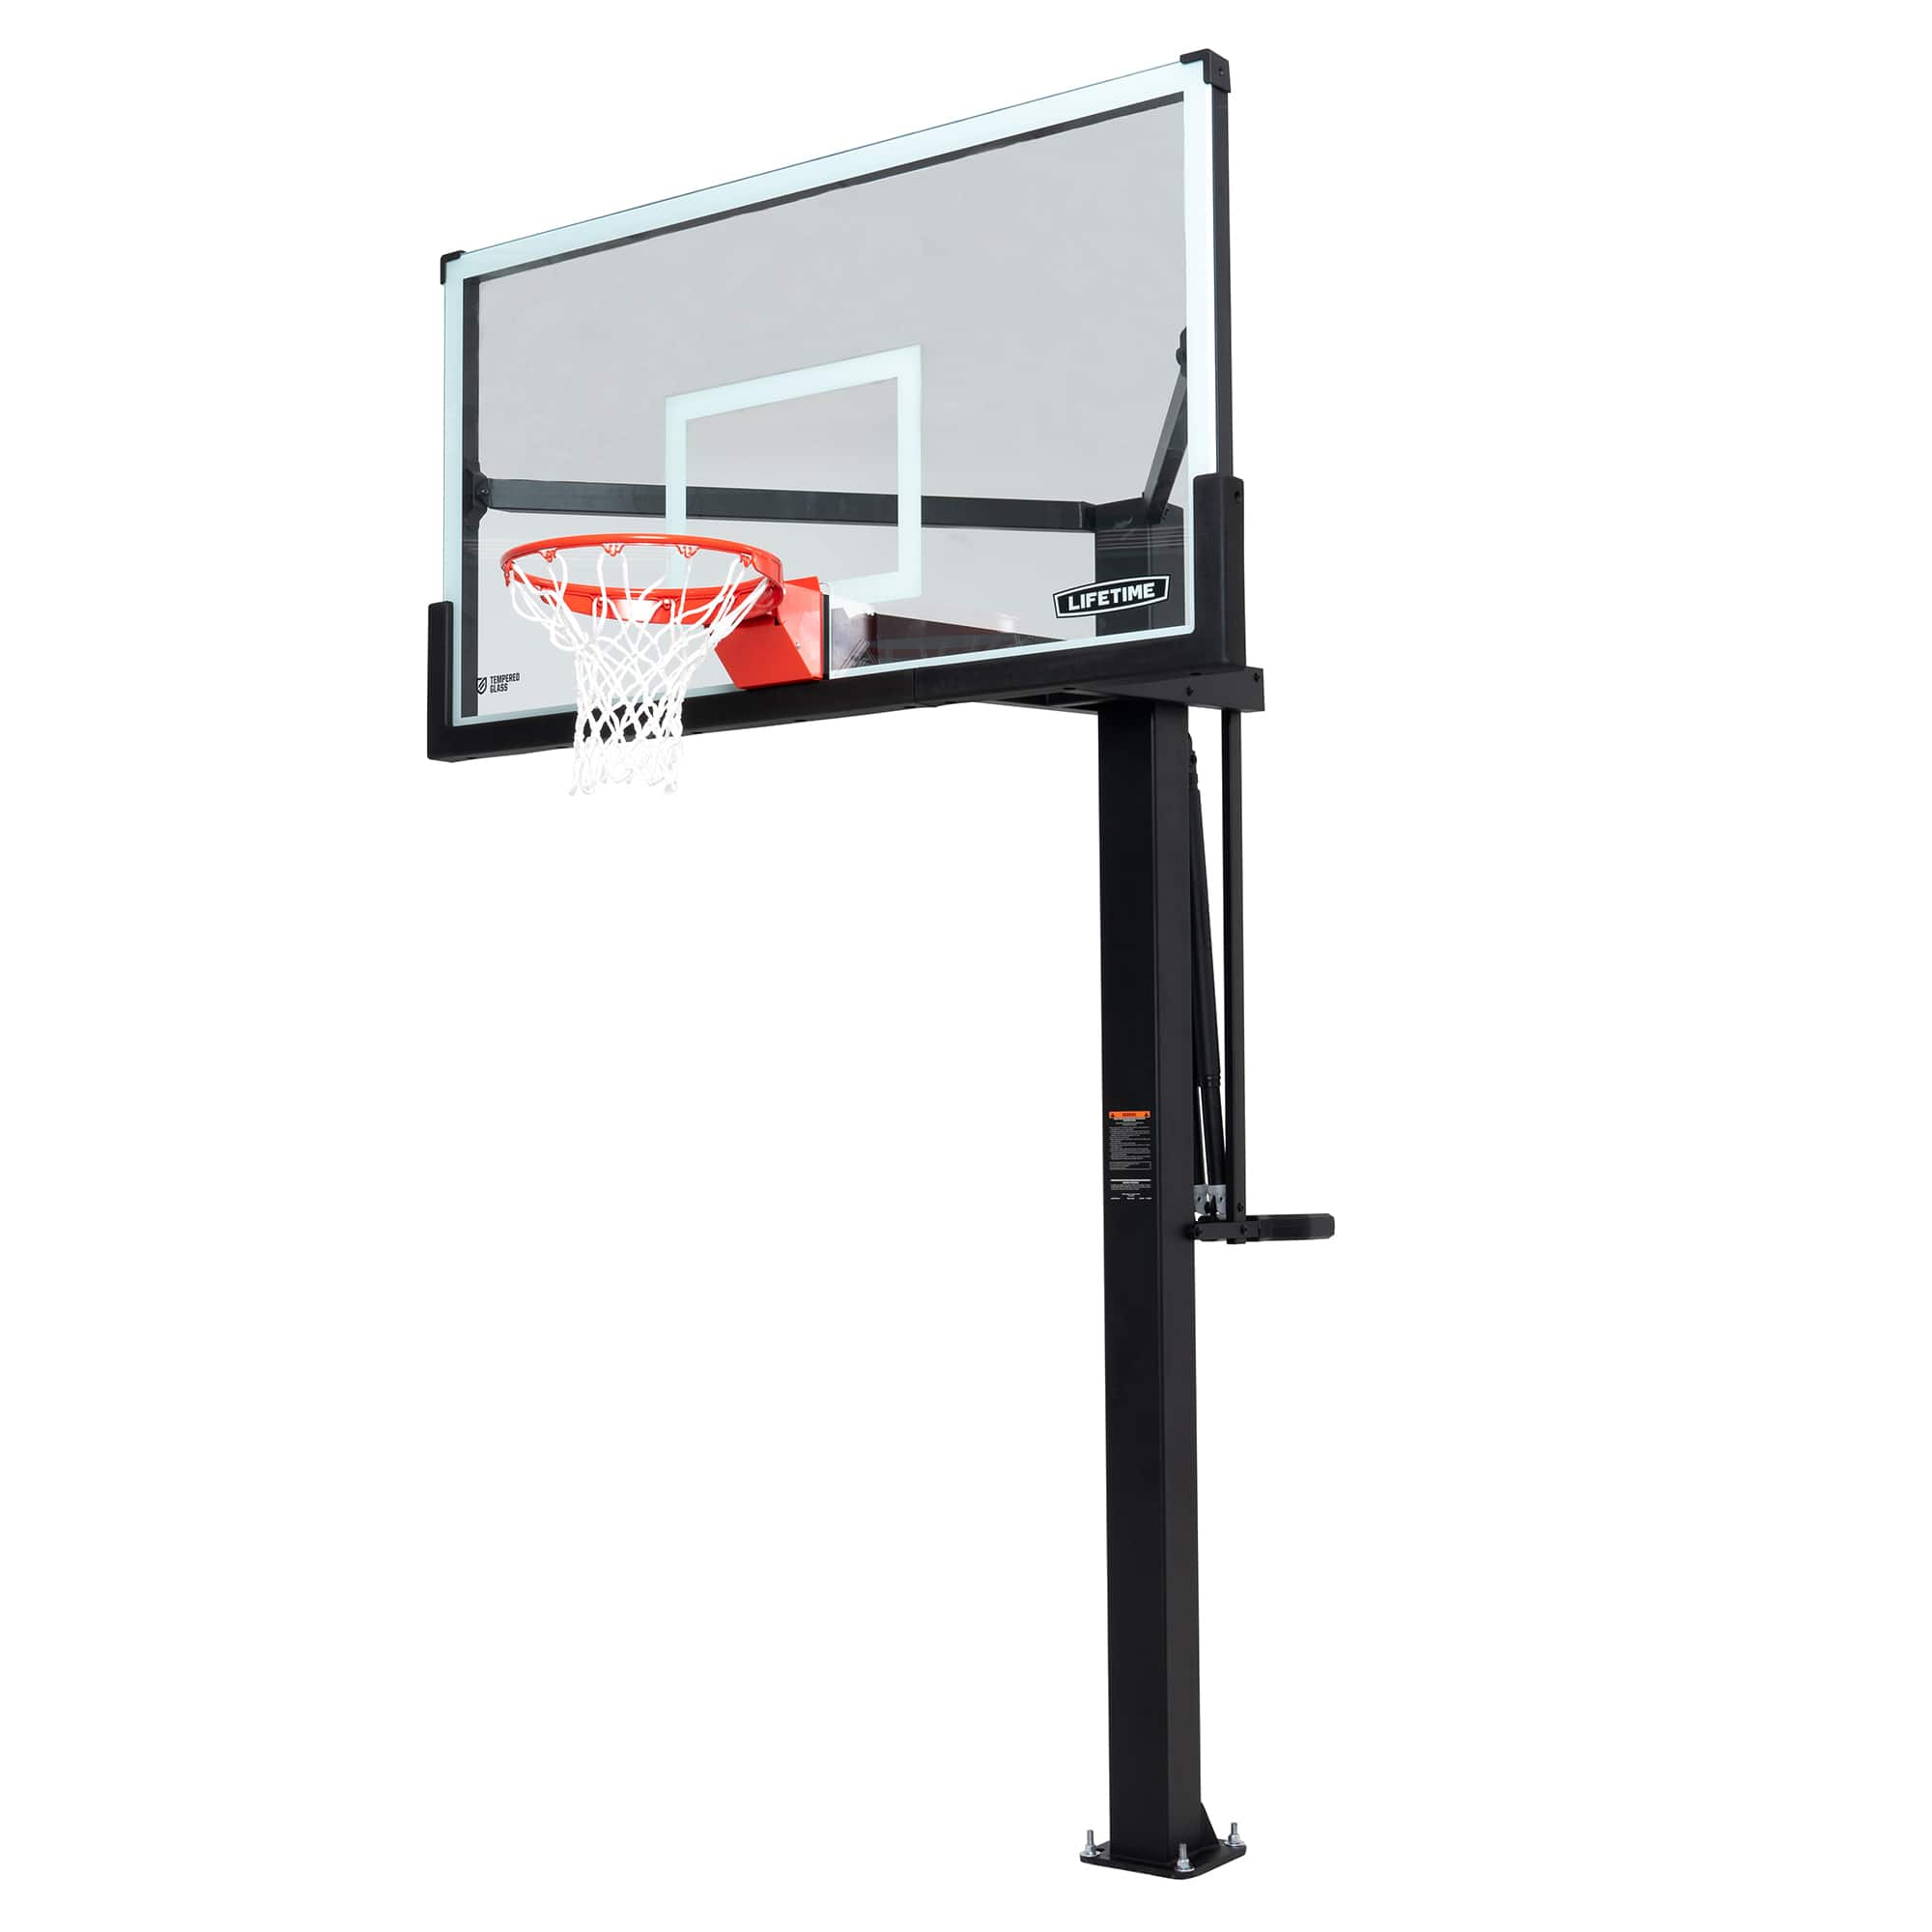 Lifetime Mammoth in-ground Basketball Hoop (72-Inch Tempered Glass), 90964 - Walmart.com $1538.19 + $49.97 Shipping